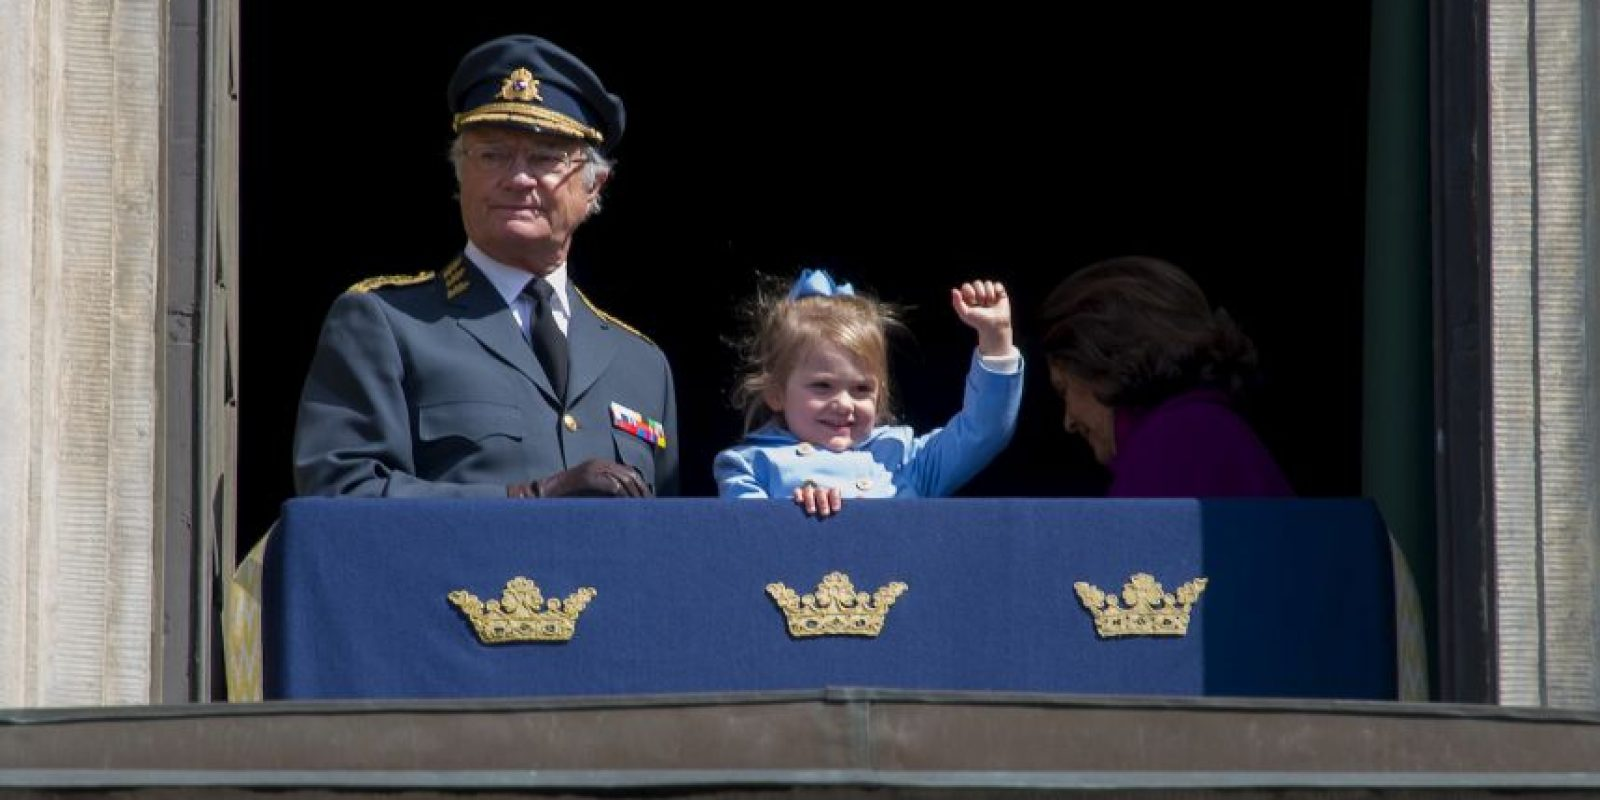 Princesa Estelle (Suecia) Foto: Getty Images